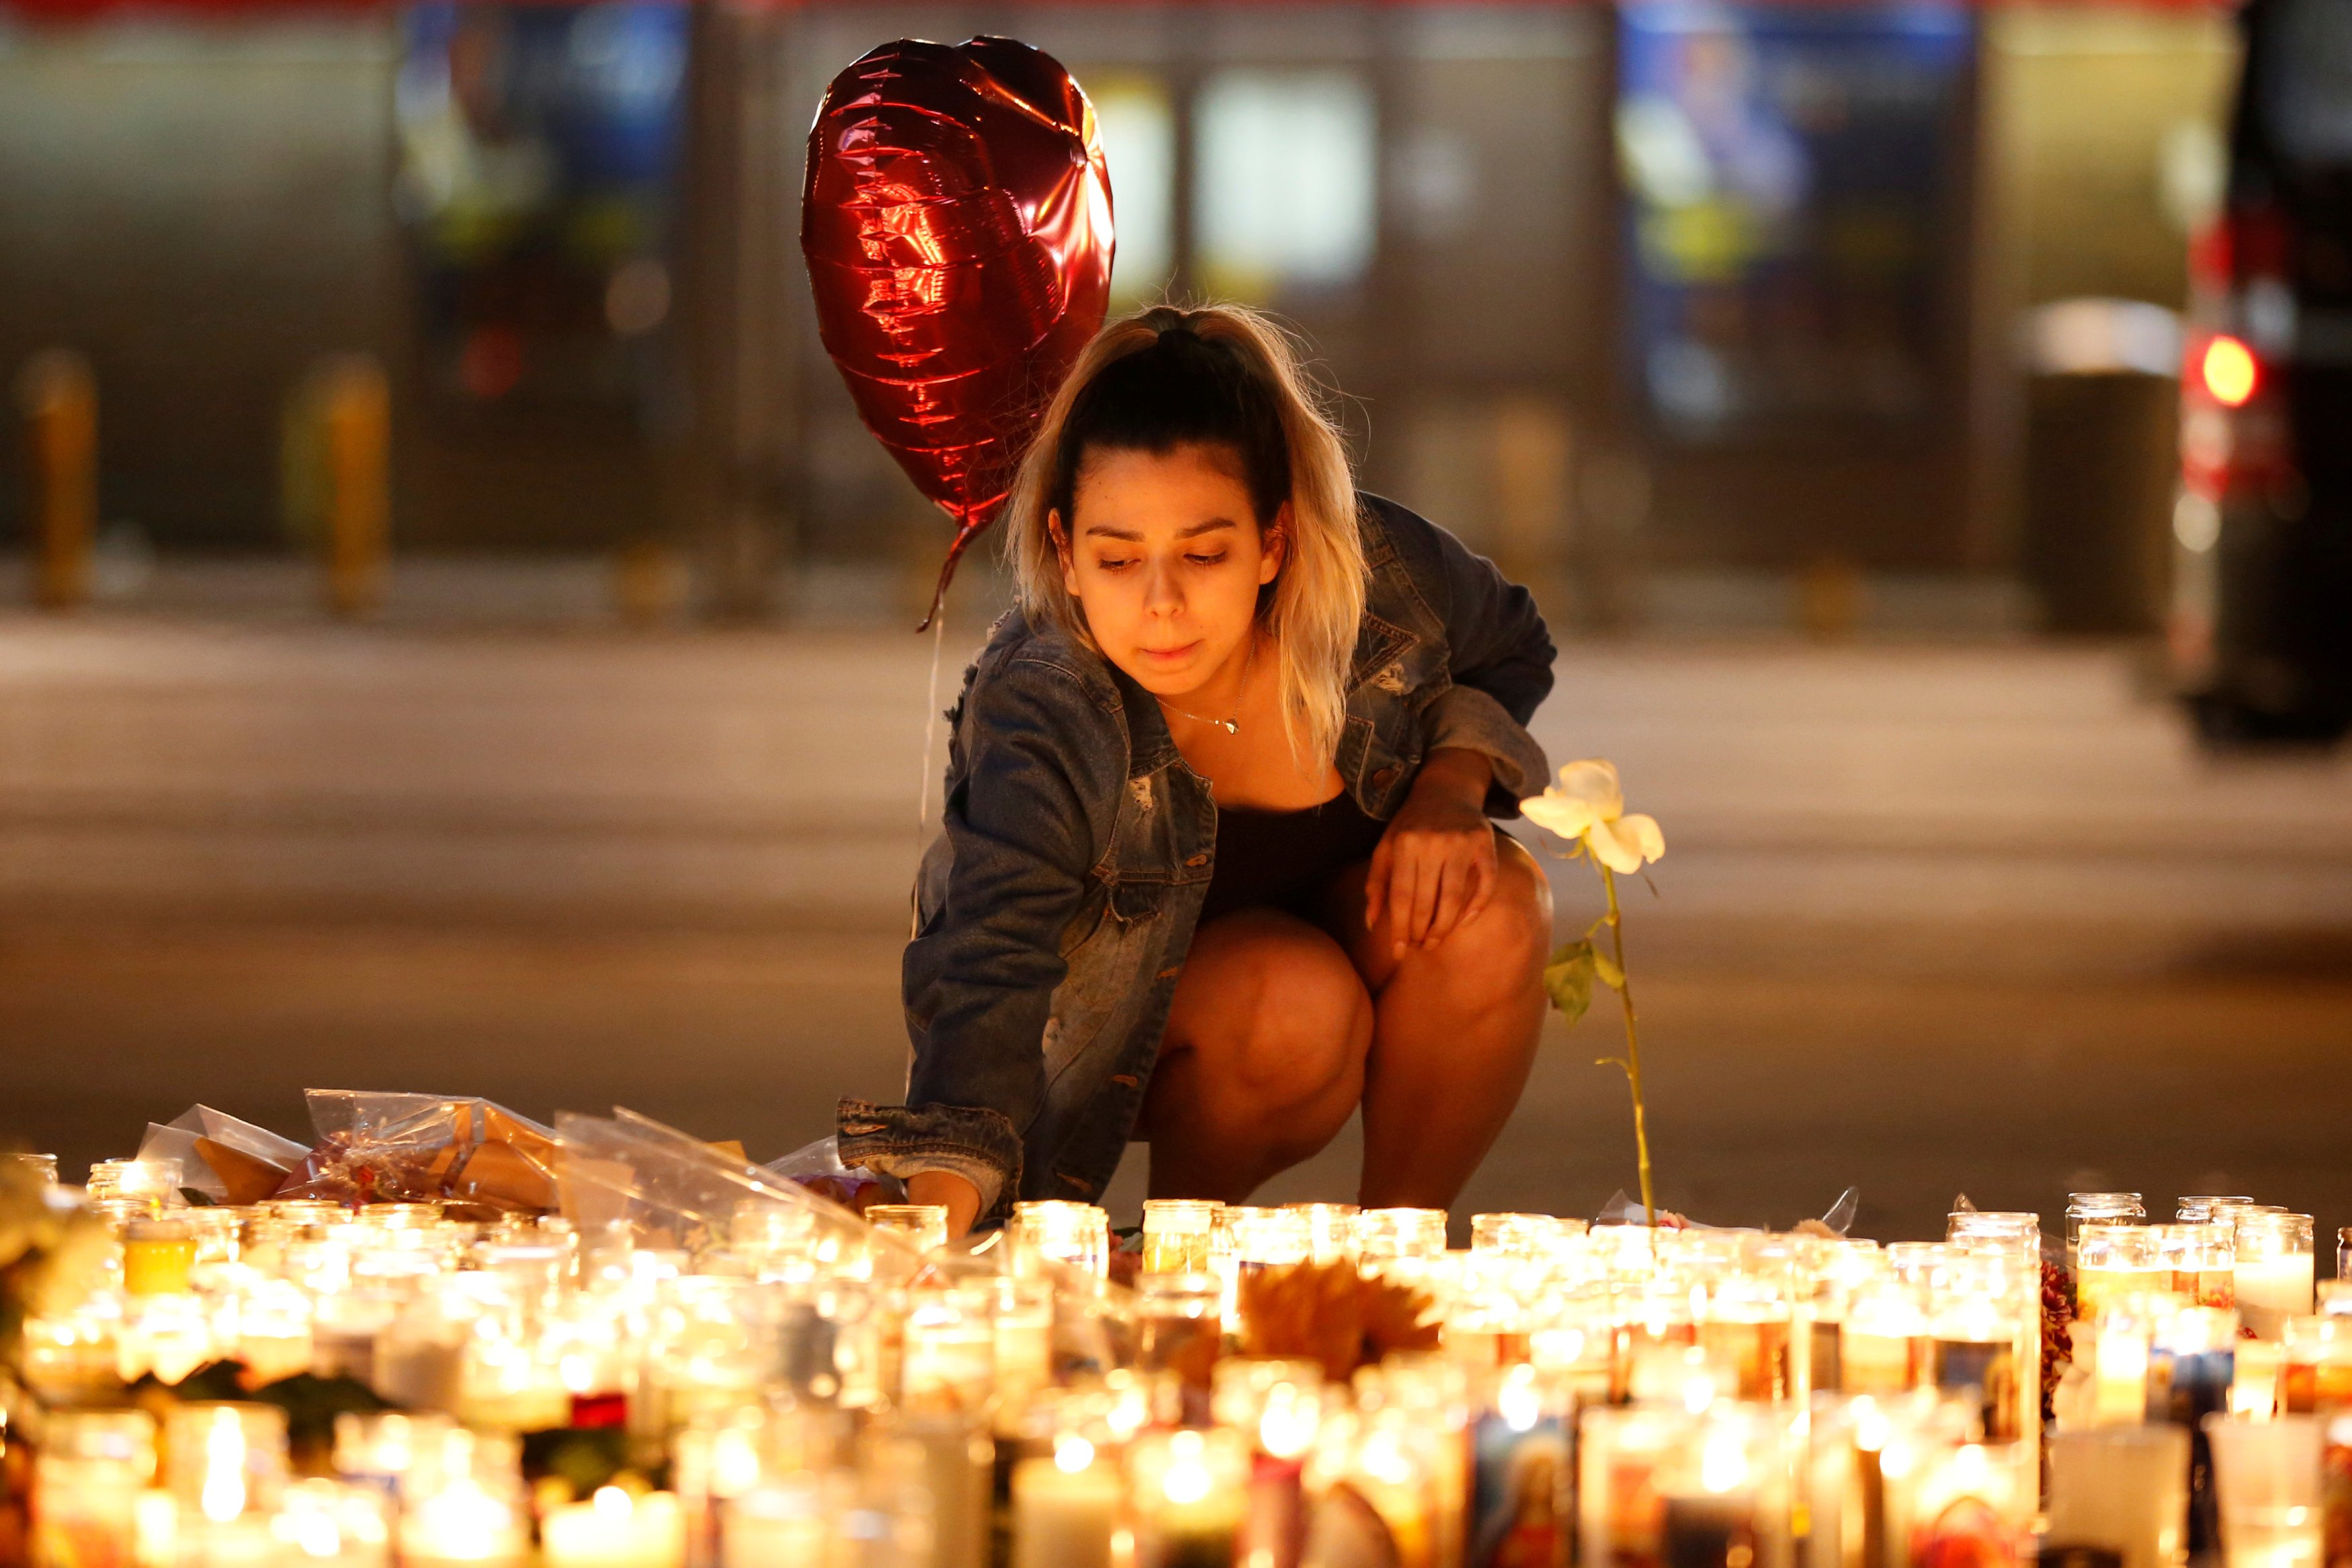 A woman lights candles at a vigil on the Las Vegas strip following a mass shooting at the Route 91 Harvest Country Music Festival in Las Vegas